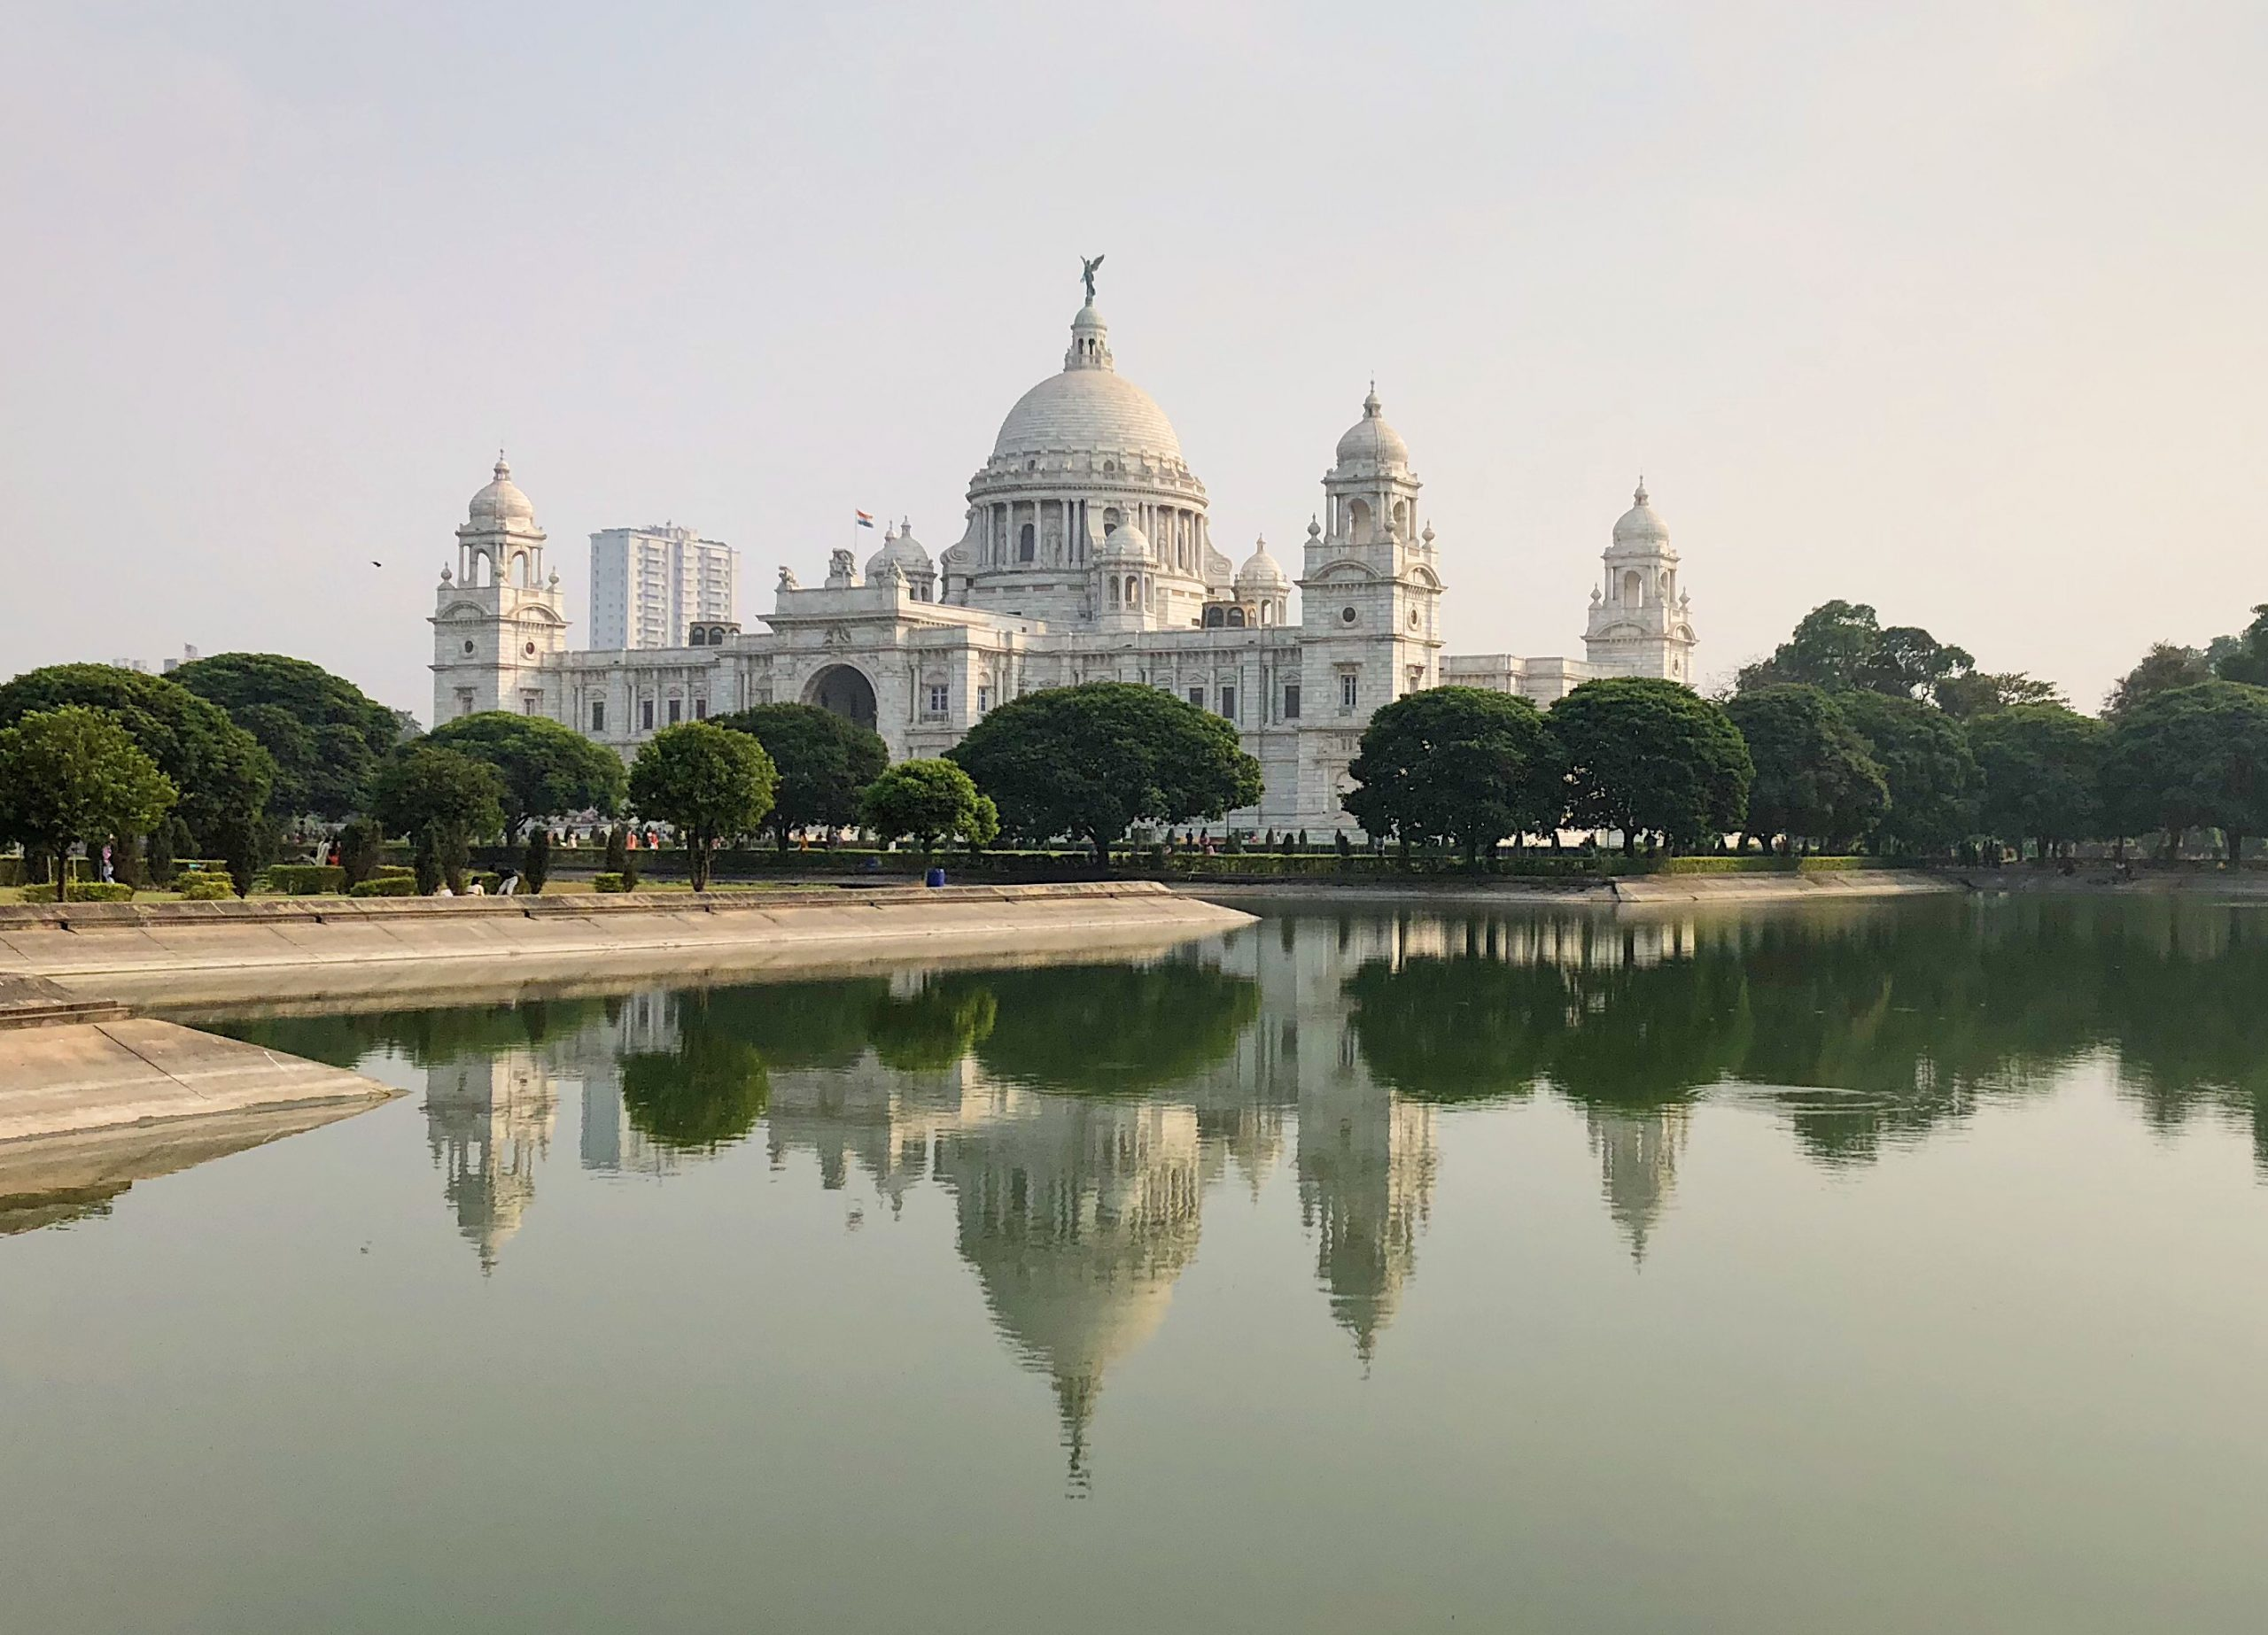 Exploring India: 5 Interesting Places to Visit in Kolkata via @outandacross